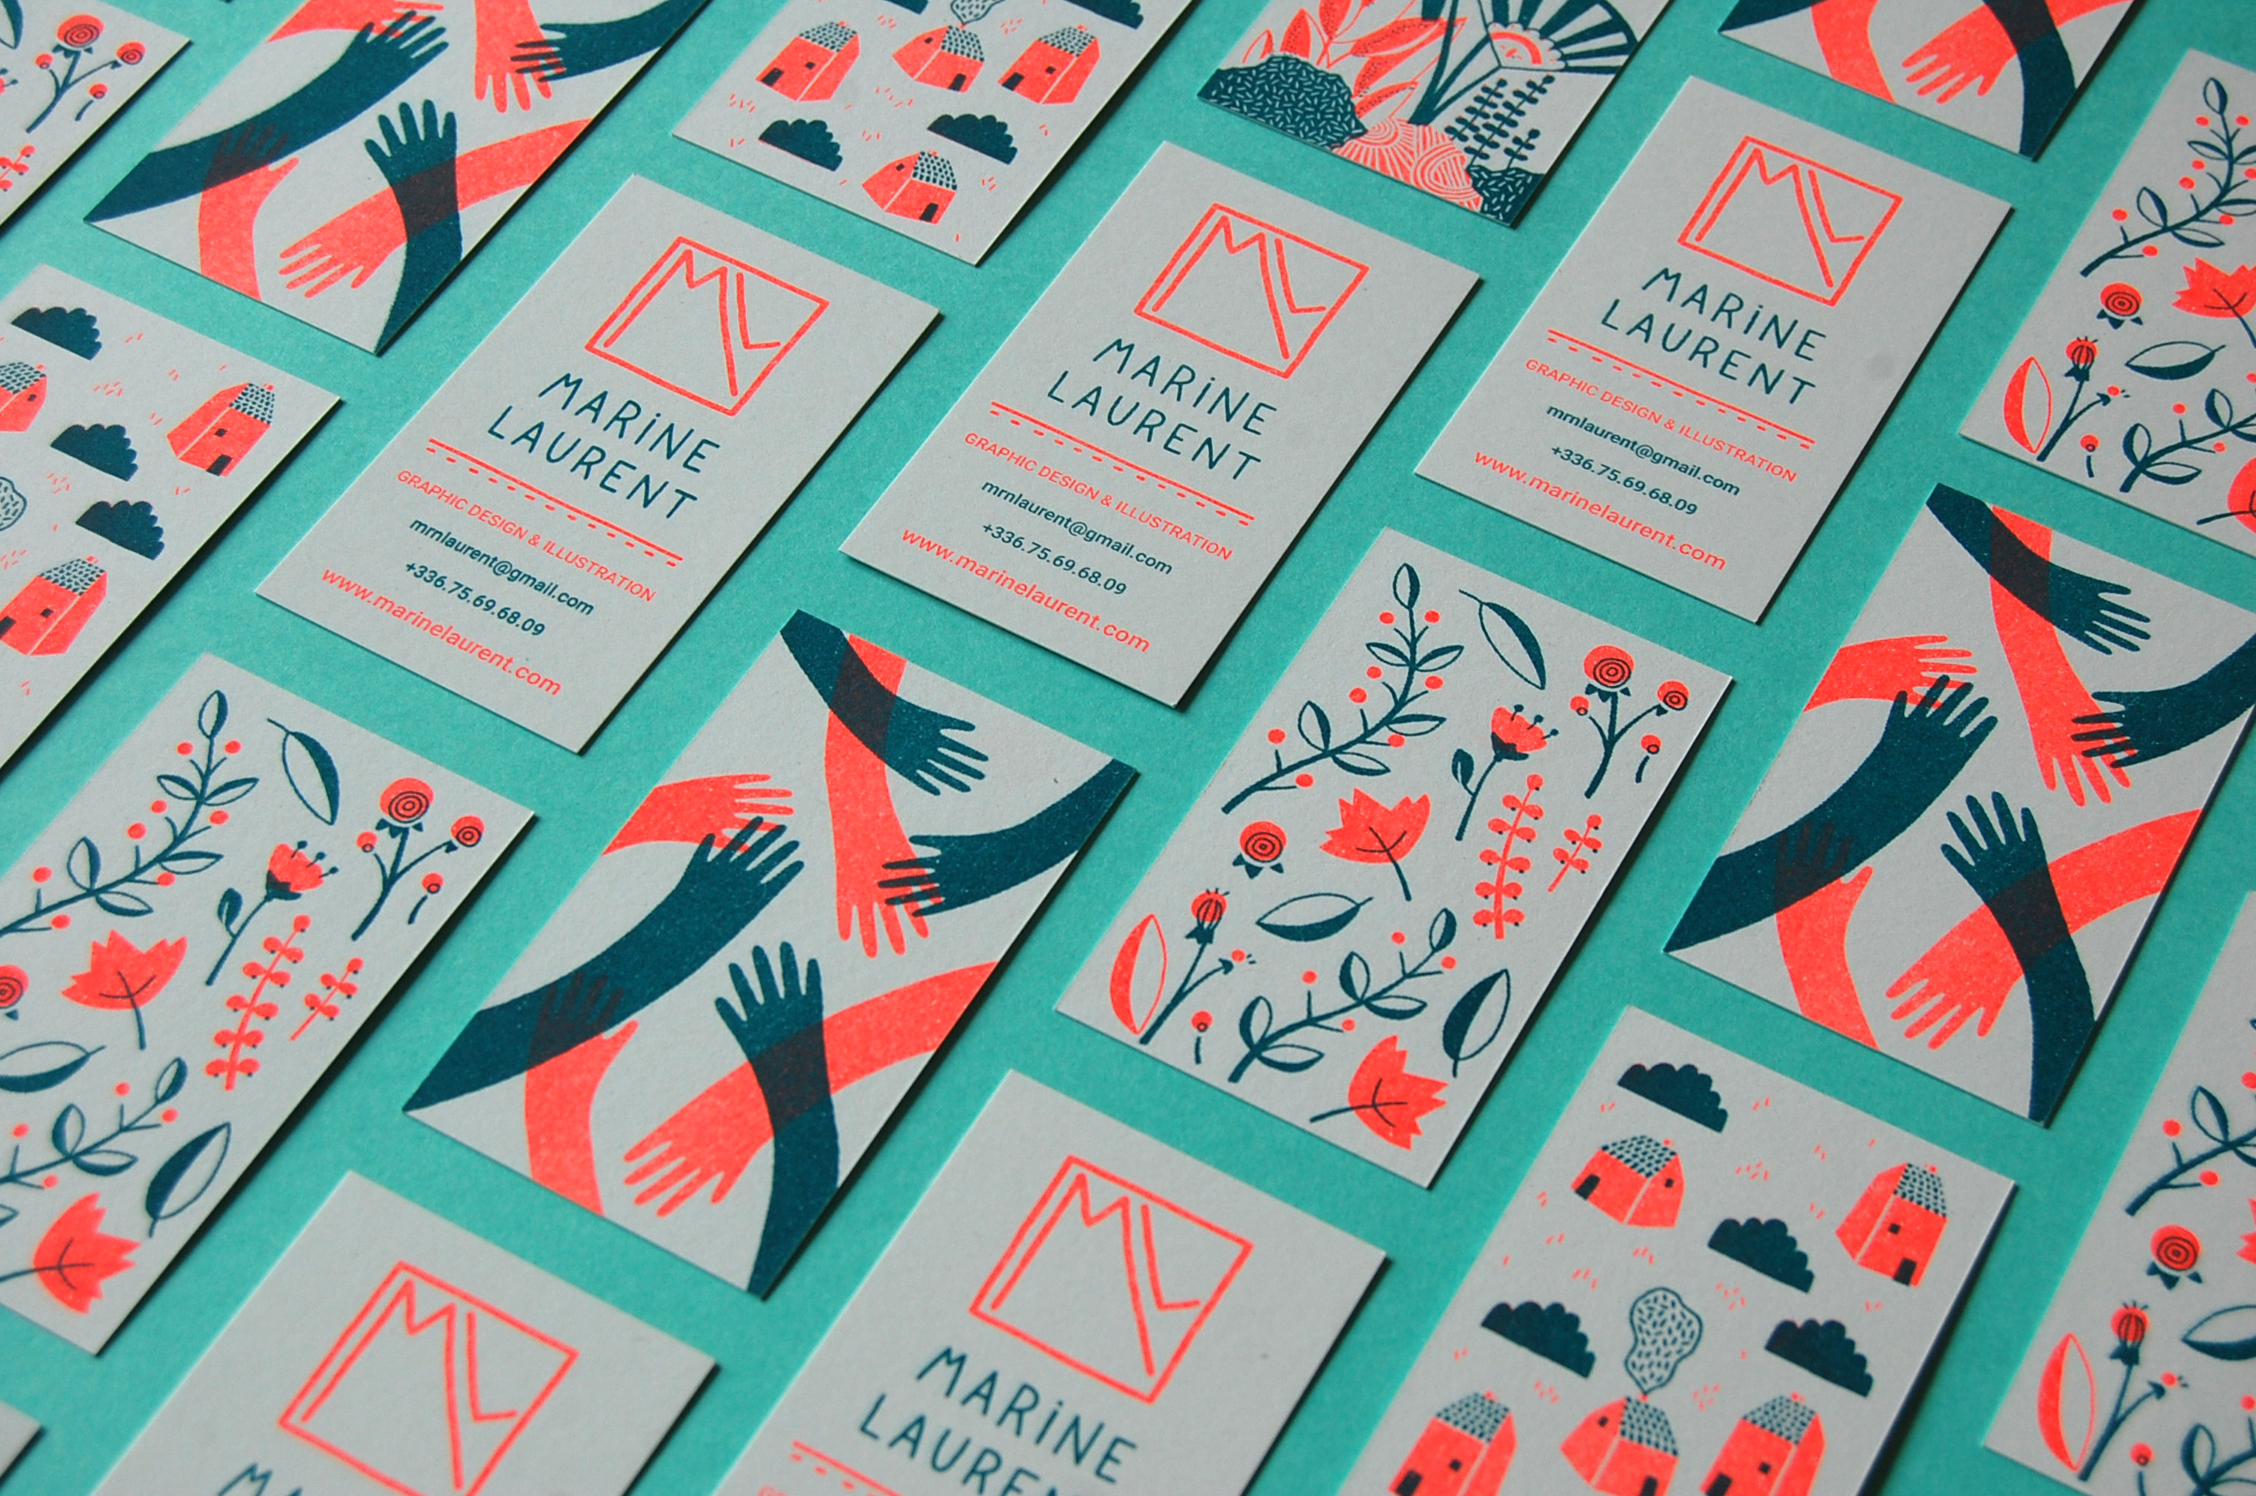 Riso Business Cards on Behance